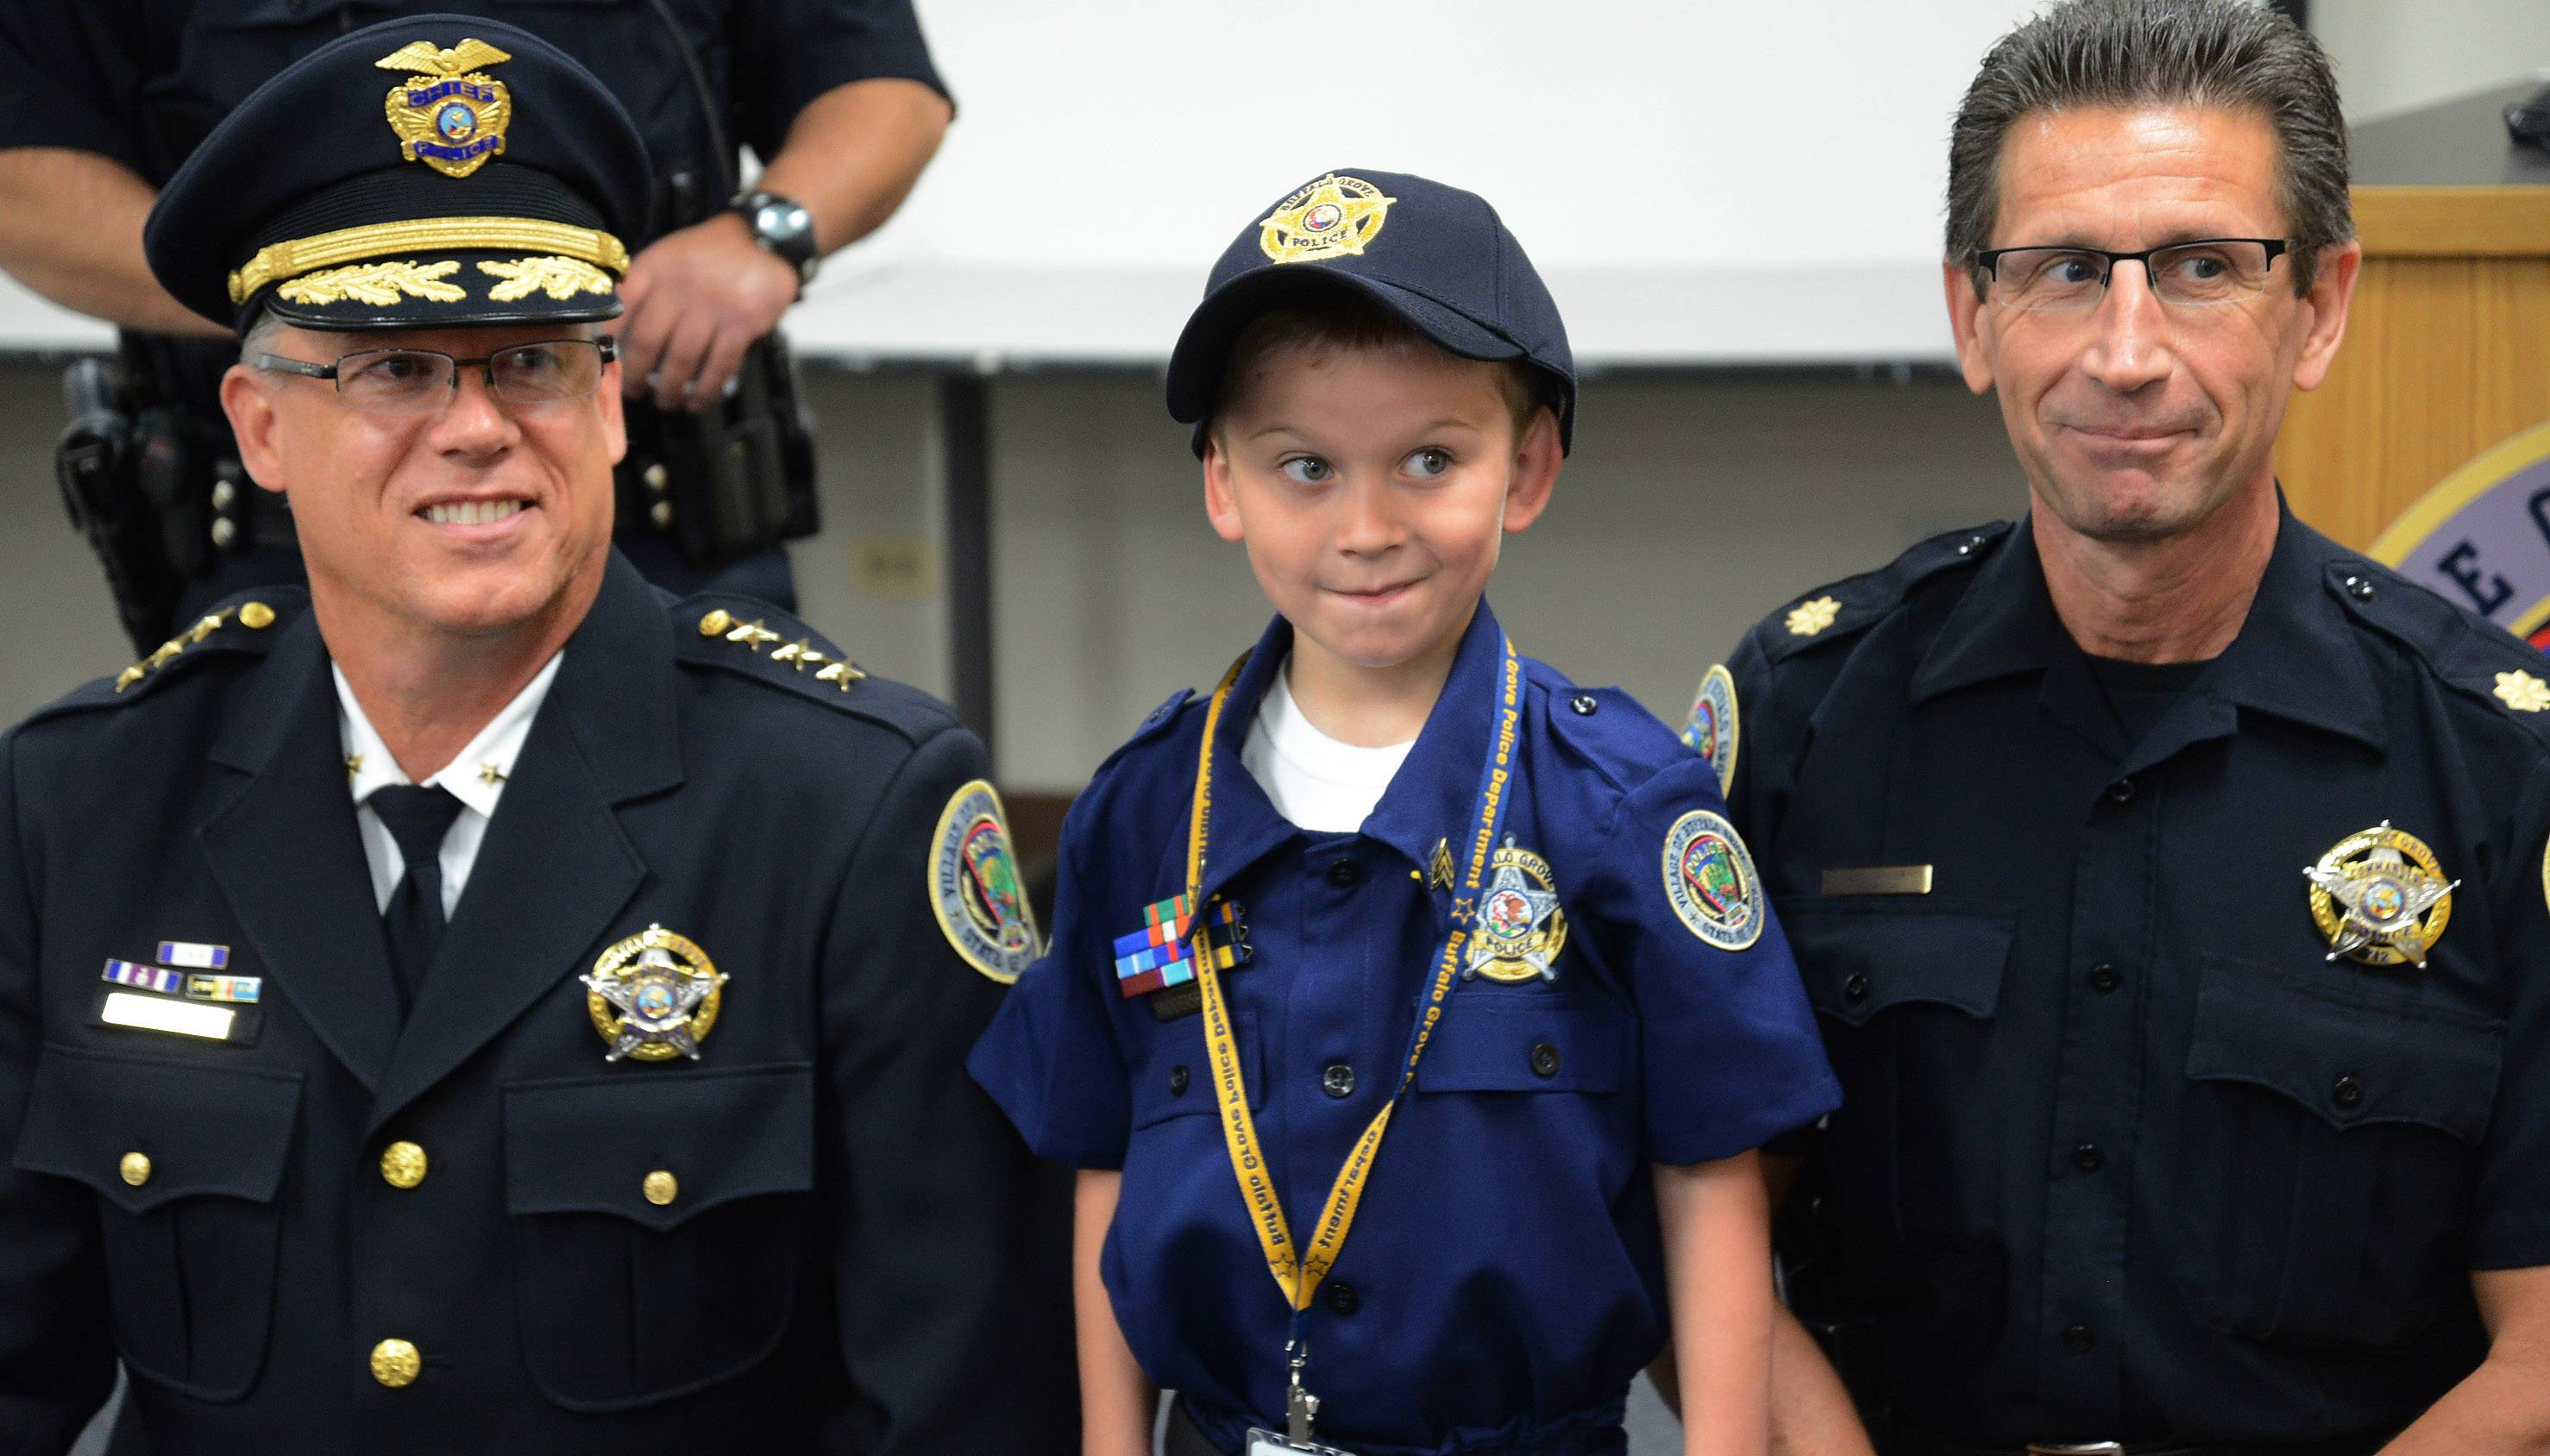 7-year-old gets to be a Buffalo Grove officer for a day